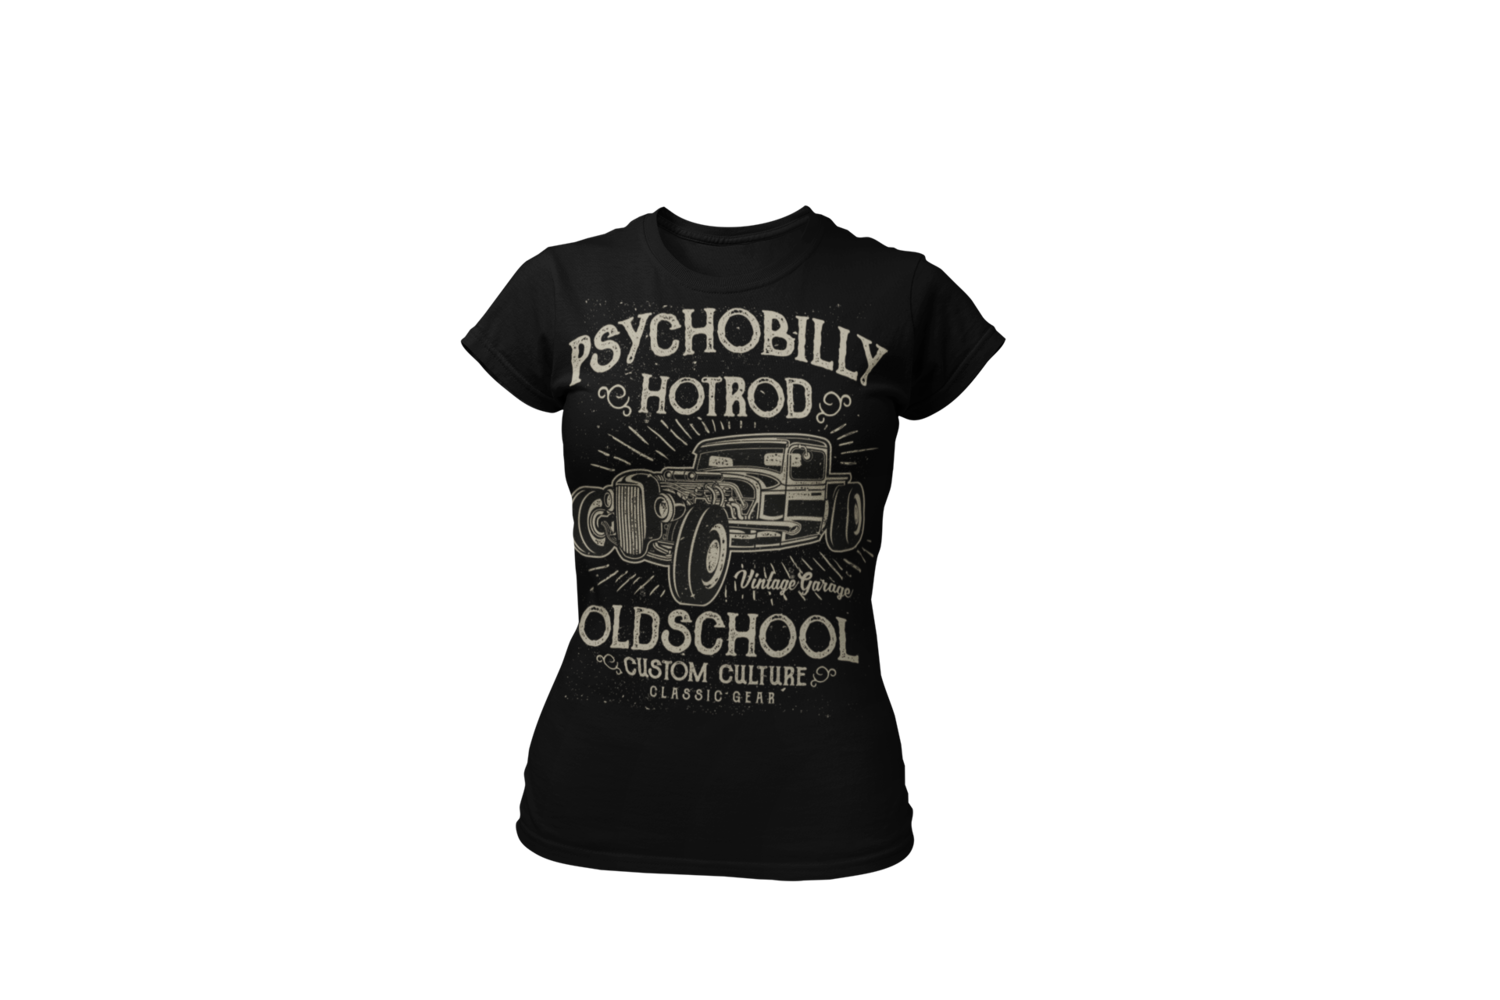 PSYCHOBILLY HOT ROD T-SHIRT FOR WOMEN